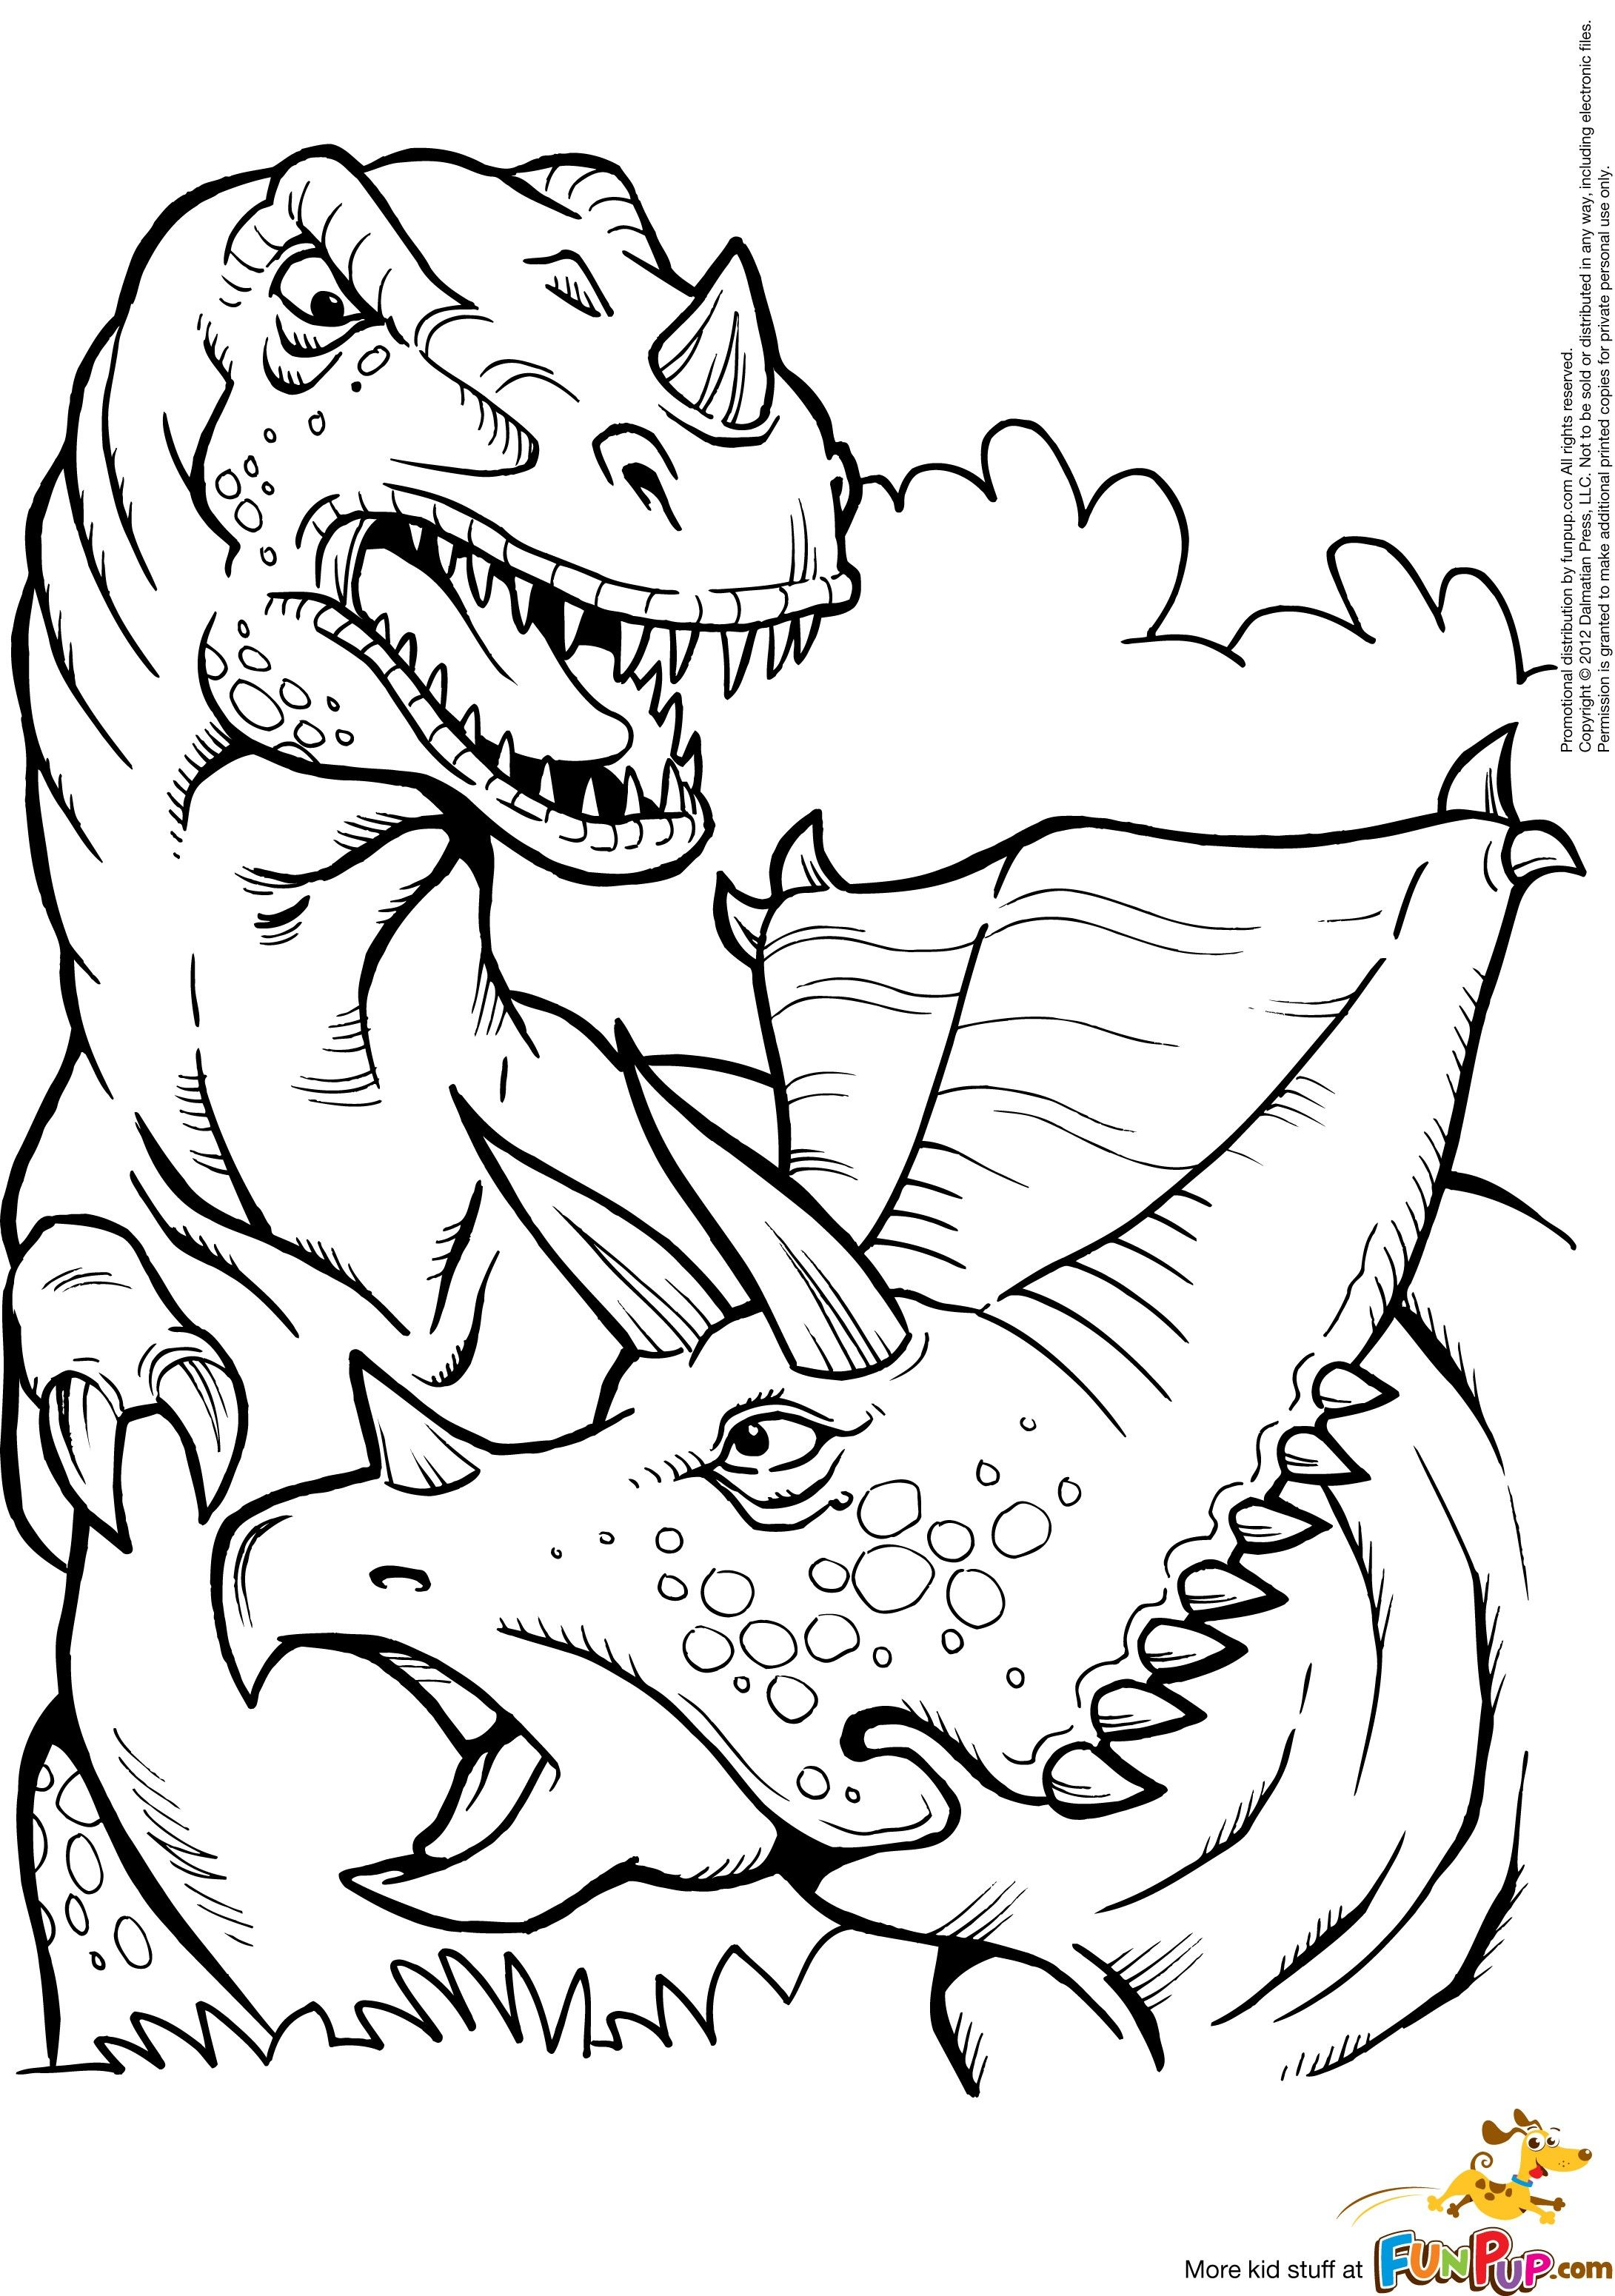 Kleurplaat: printable t-rex and triceratops coloring page ...